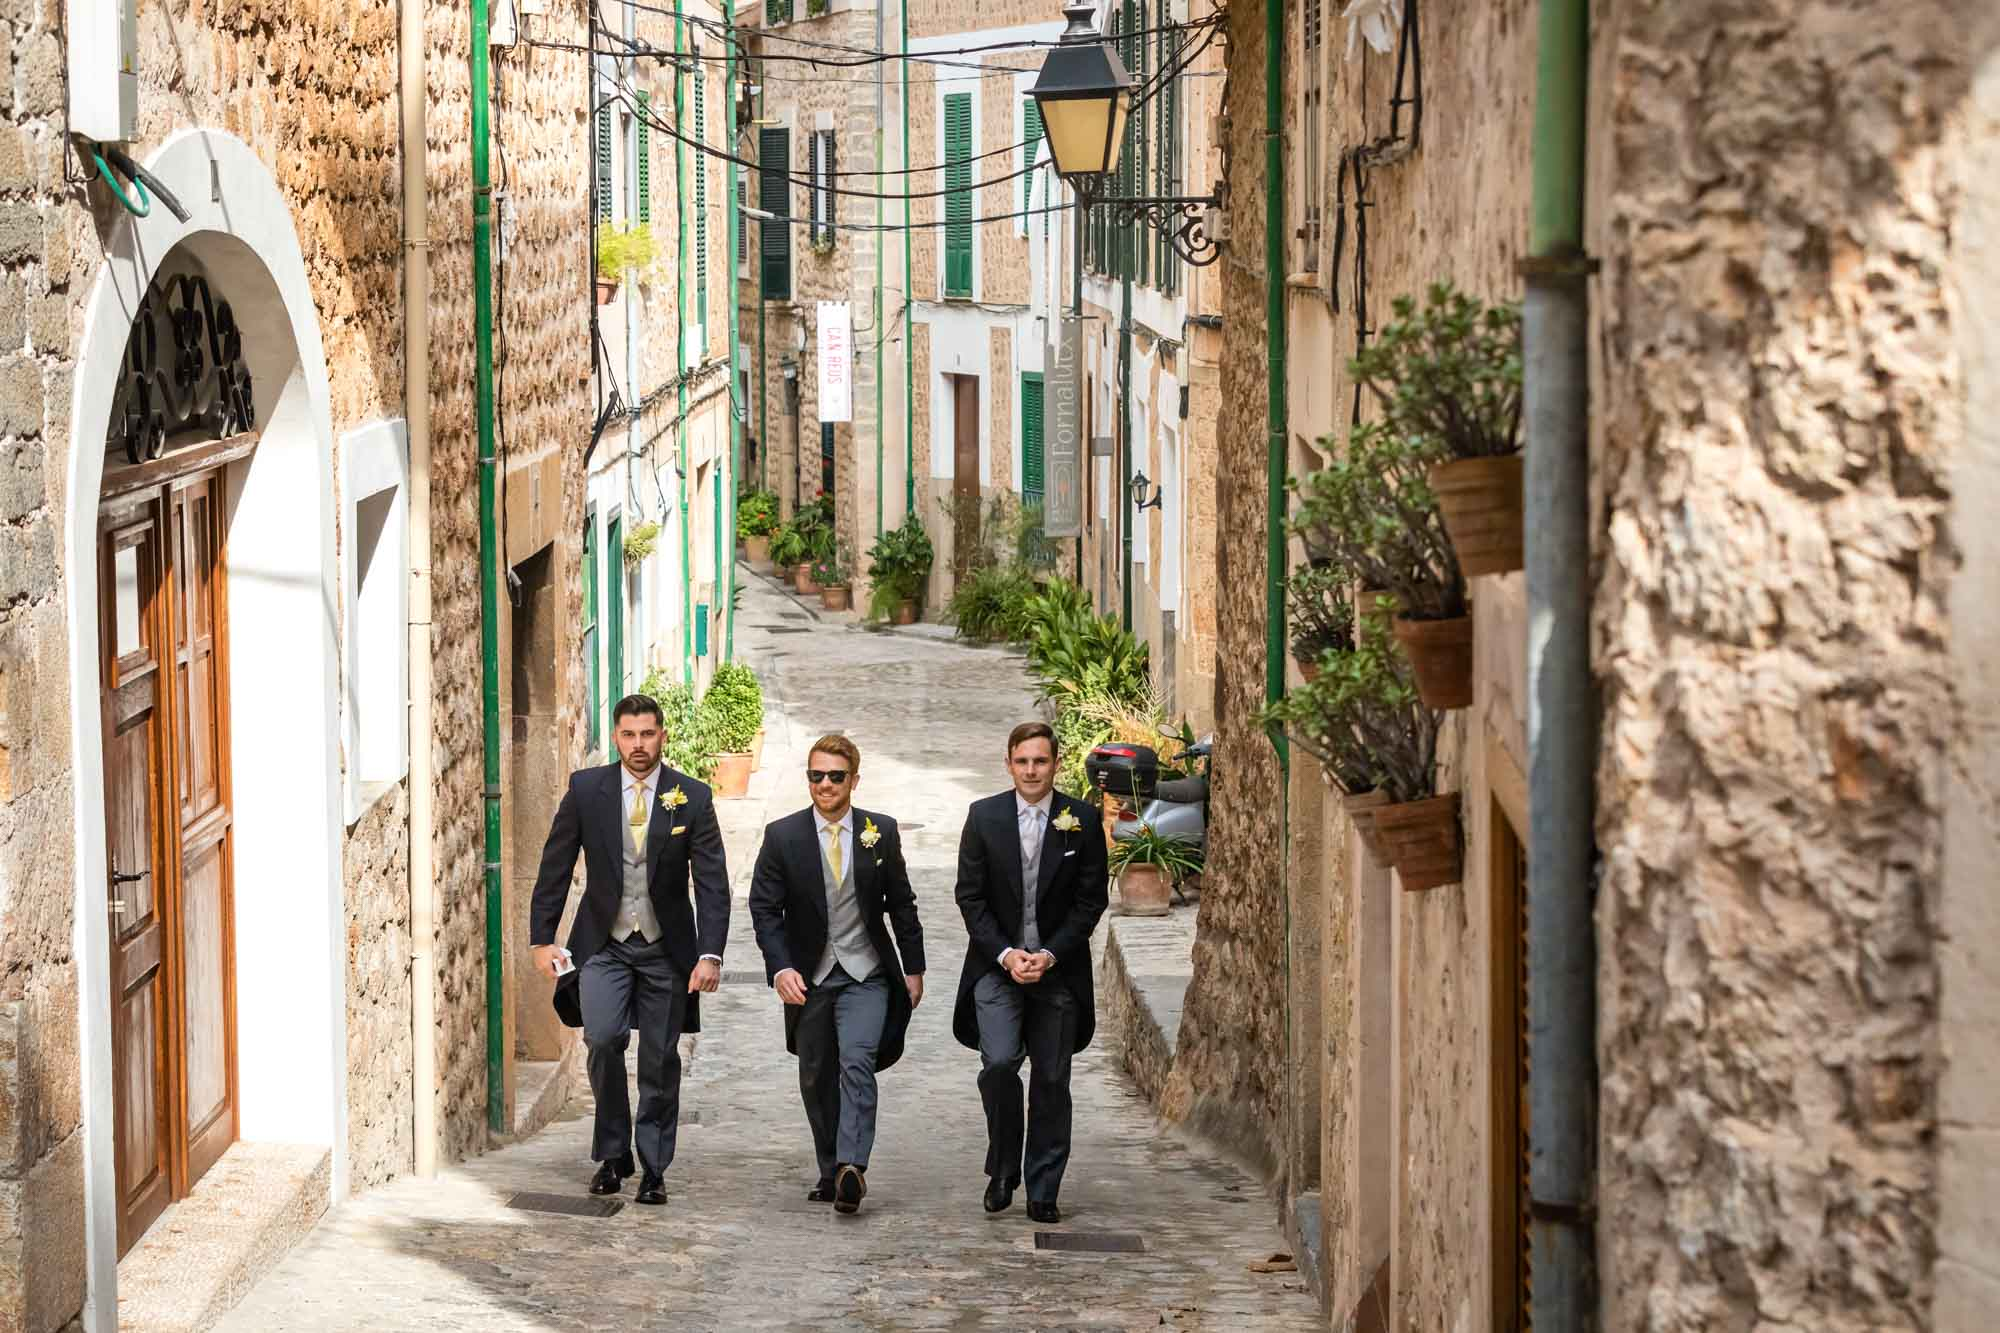 The groom and his bestmen leave Petit Hotel in Fornalutx, Mallorca